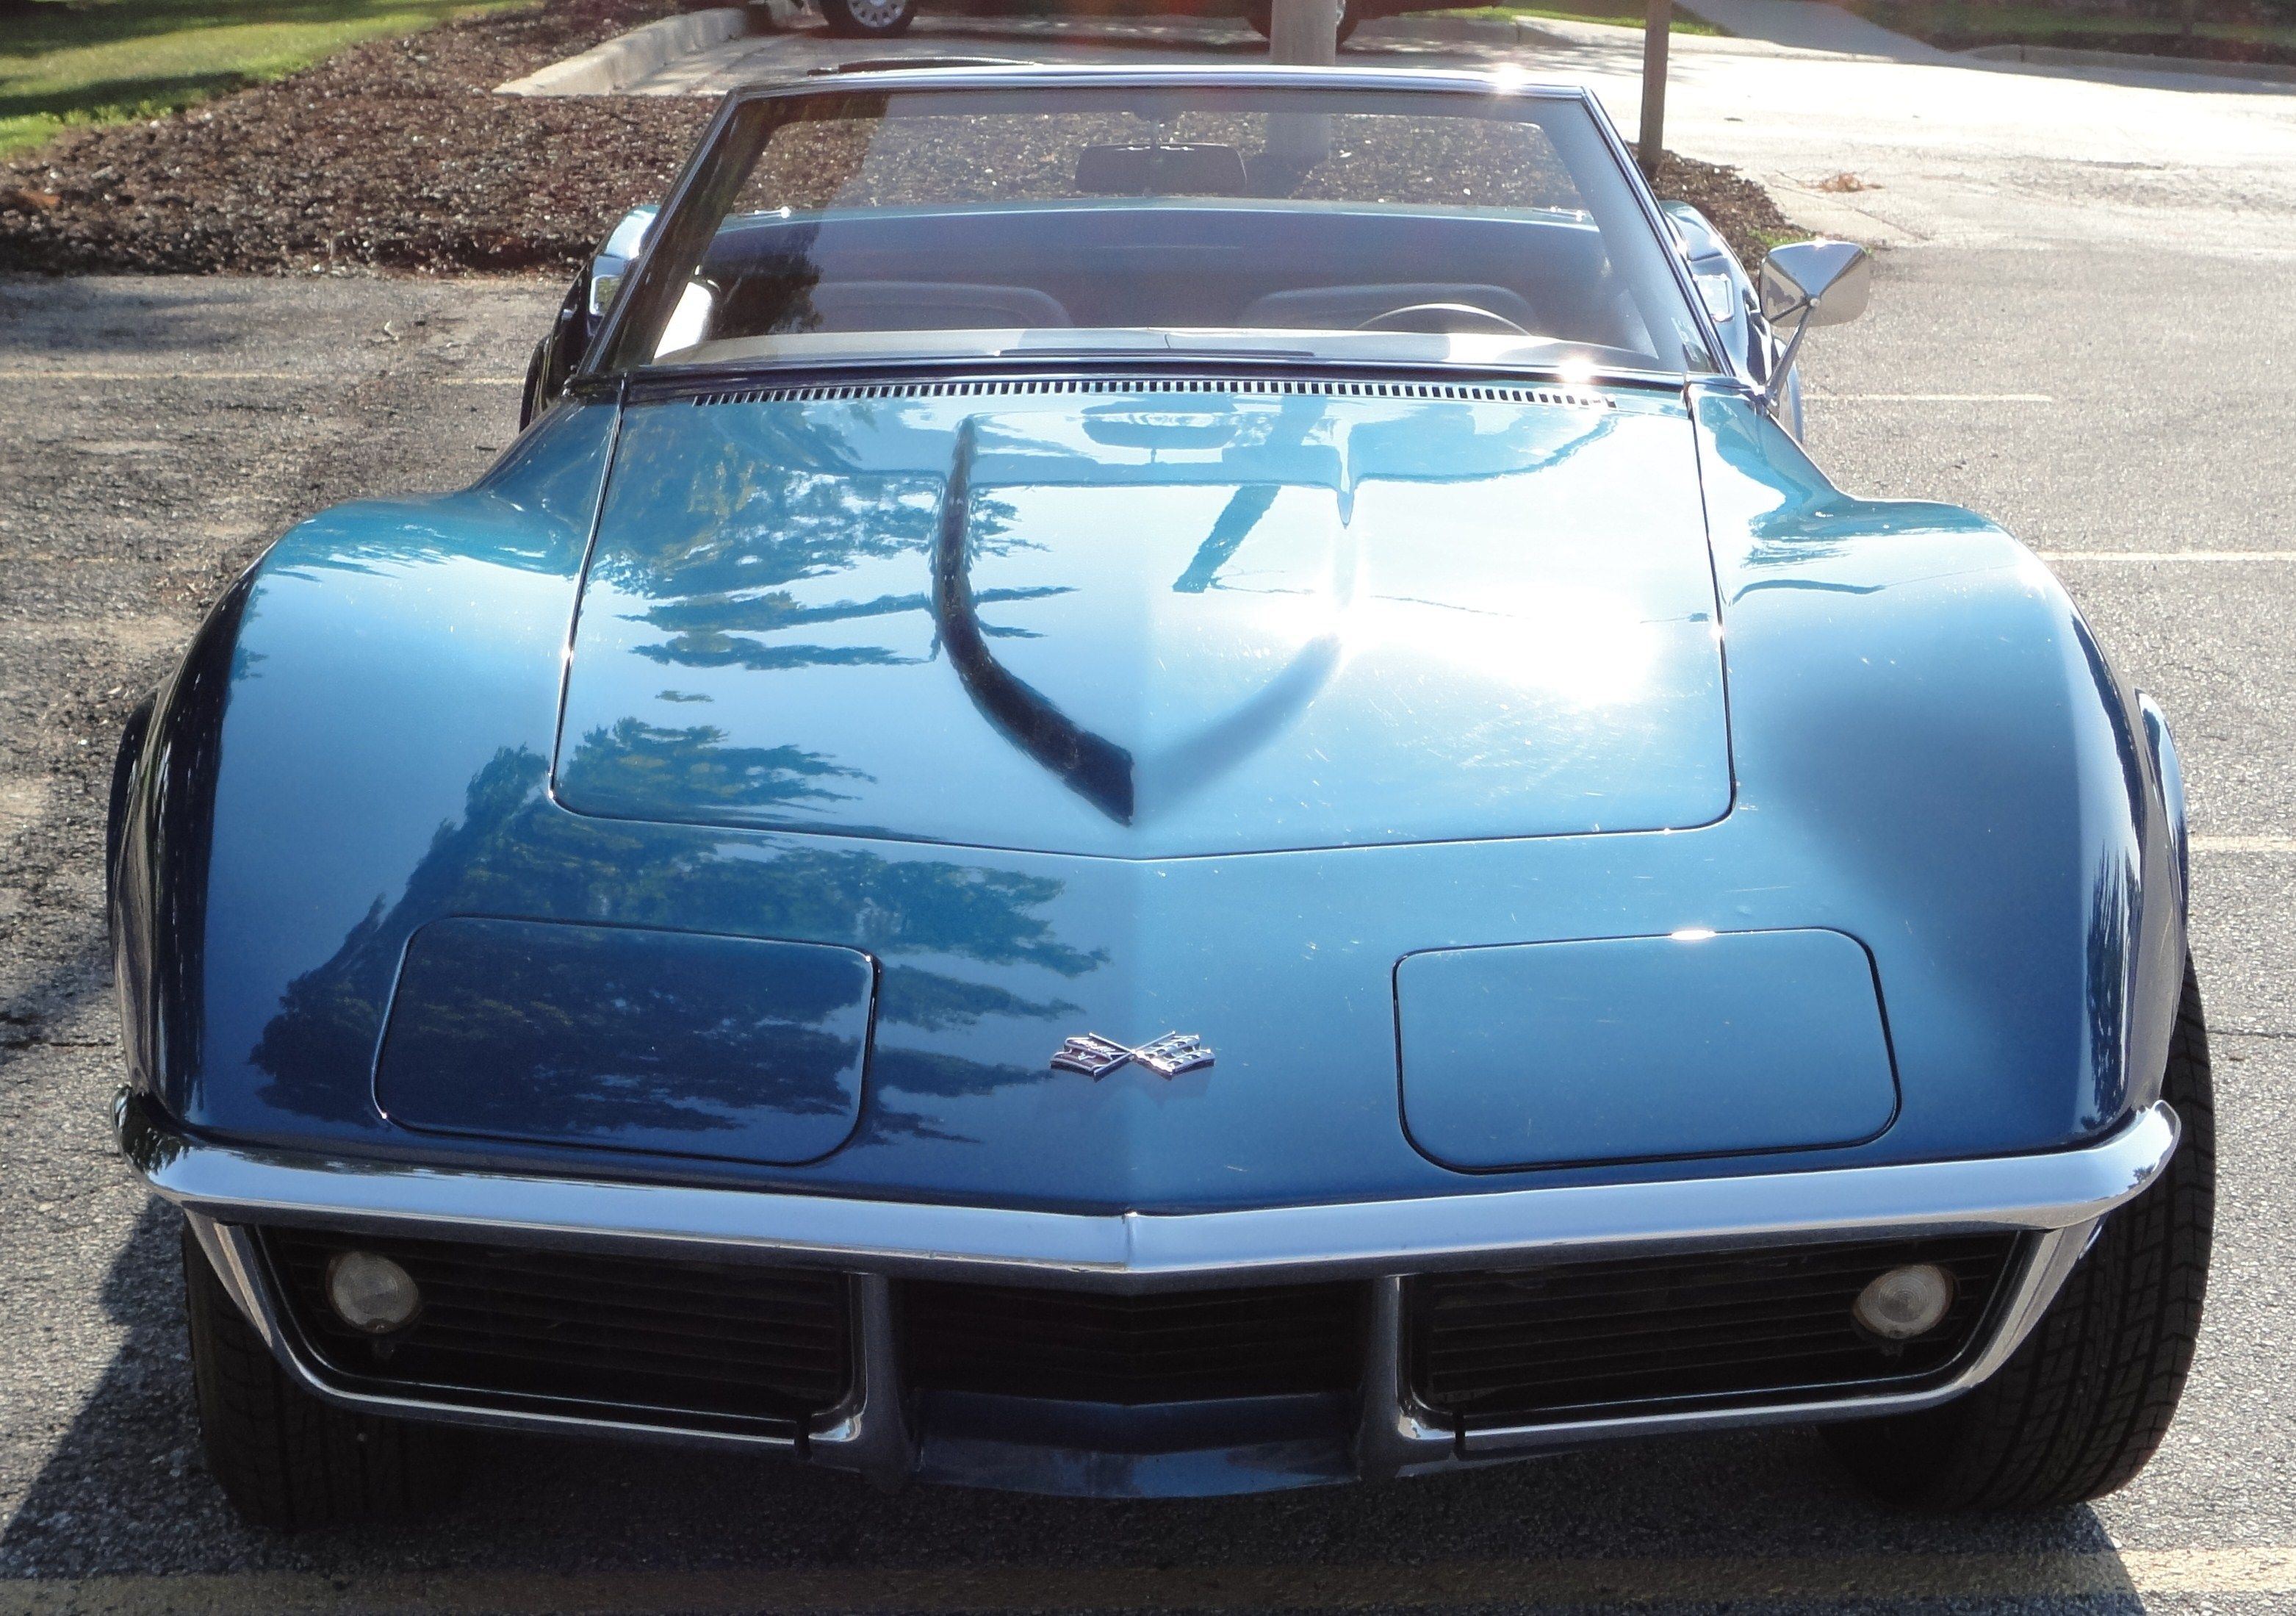 1968 Corvette Roadster 327 350hp Front View Blue Chevrolet Corvette Chevrolet Corvette Stingray Corvette Summer